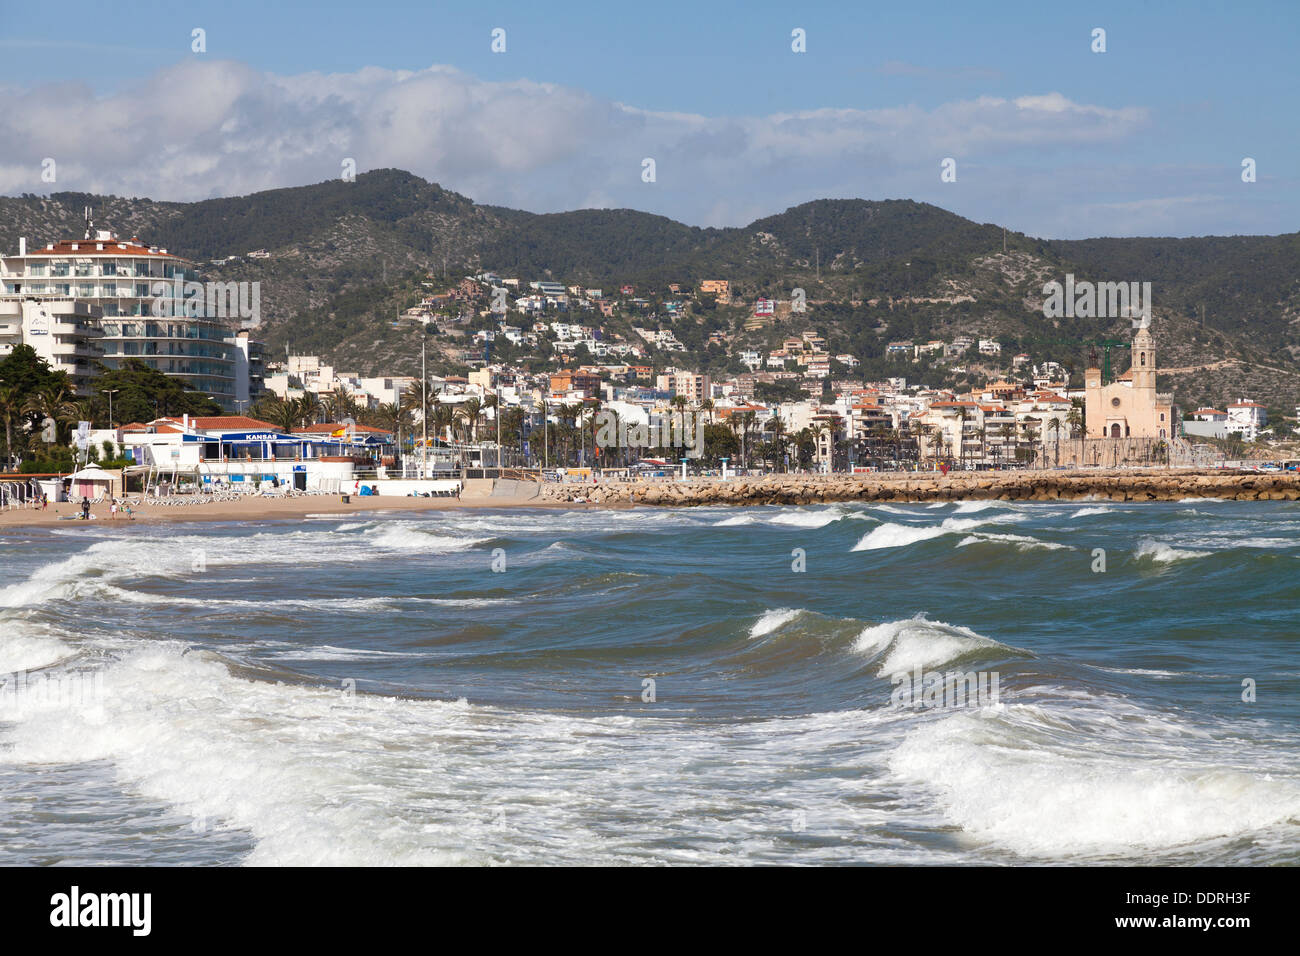 waves breaking on the sea front at Sitges - Stock Image